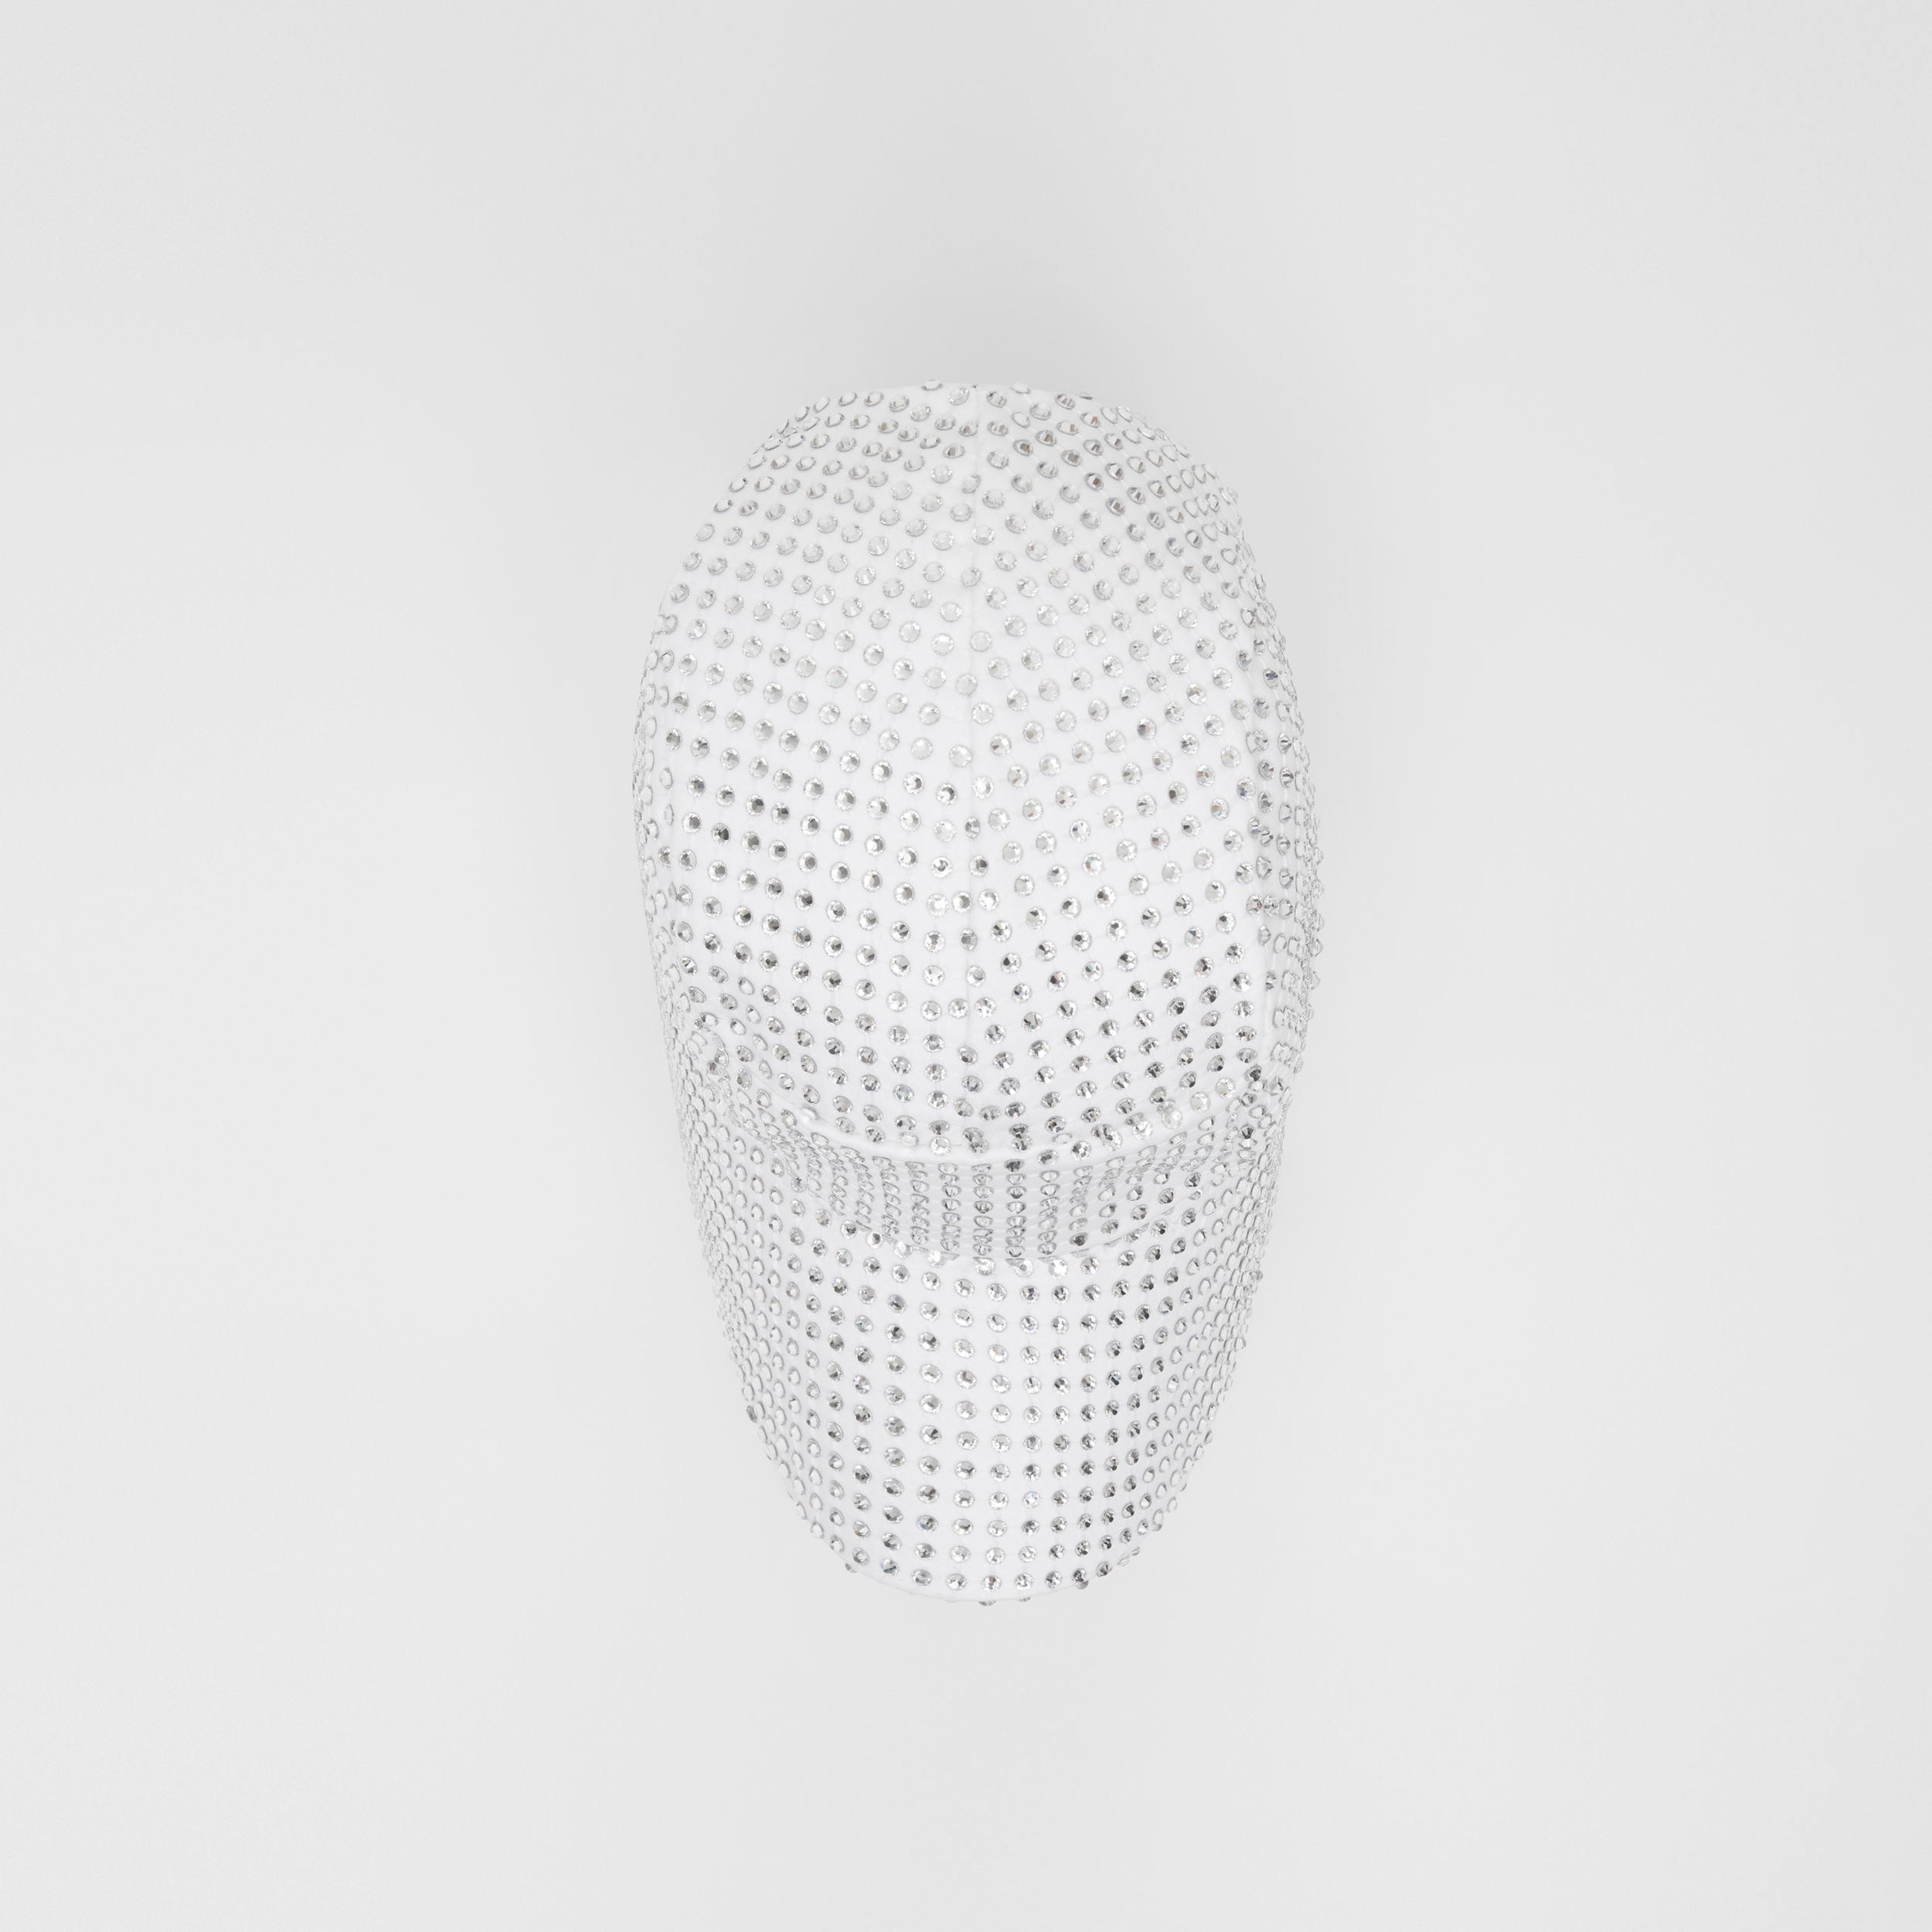 Crystal Mesh Detail Cotton Bonnet Cap in Optic White | Burberry - 1